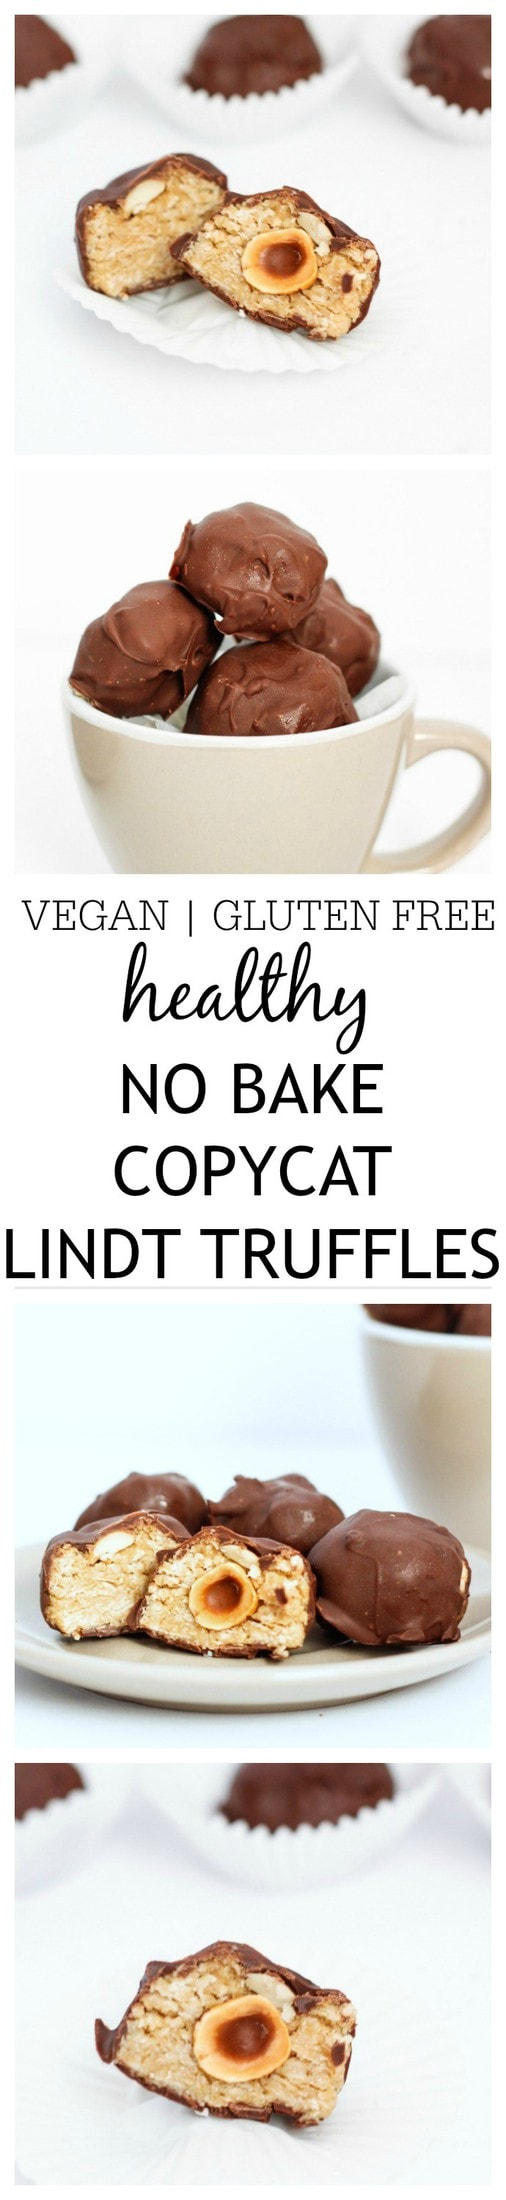 These copycat Lindt Truffles are the perfect treat to impress your guests without going to any effort! No bake, gluten free, vegan and a healthier (yet equally delicious!) spin on it's inspiration!  @thebigmansworld - thebigmansworld.com